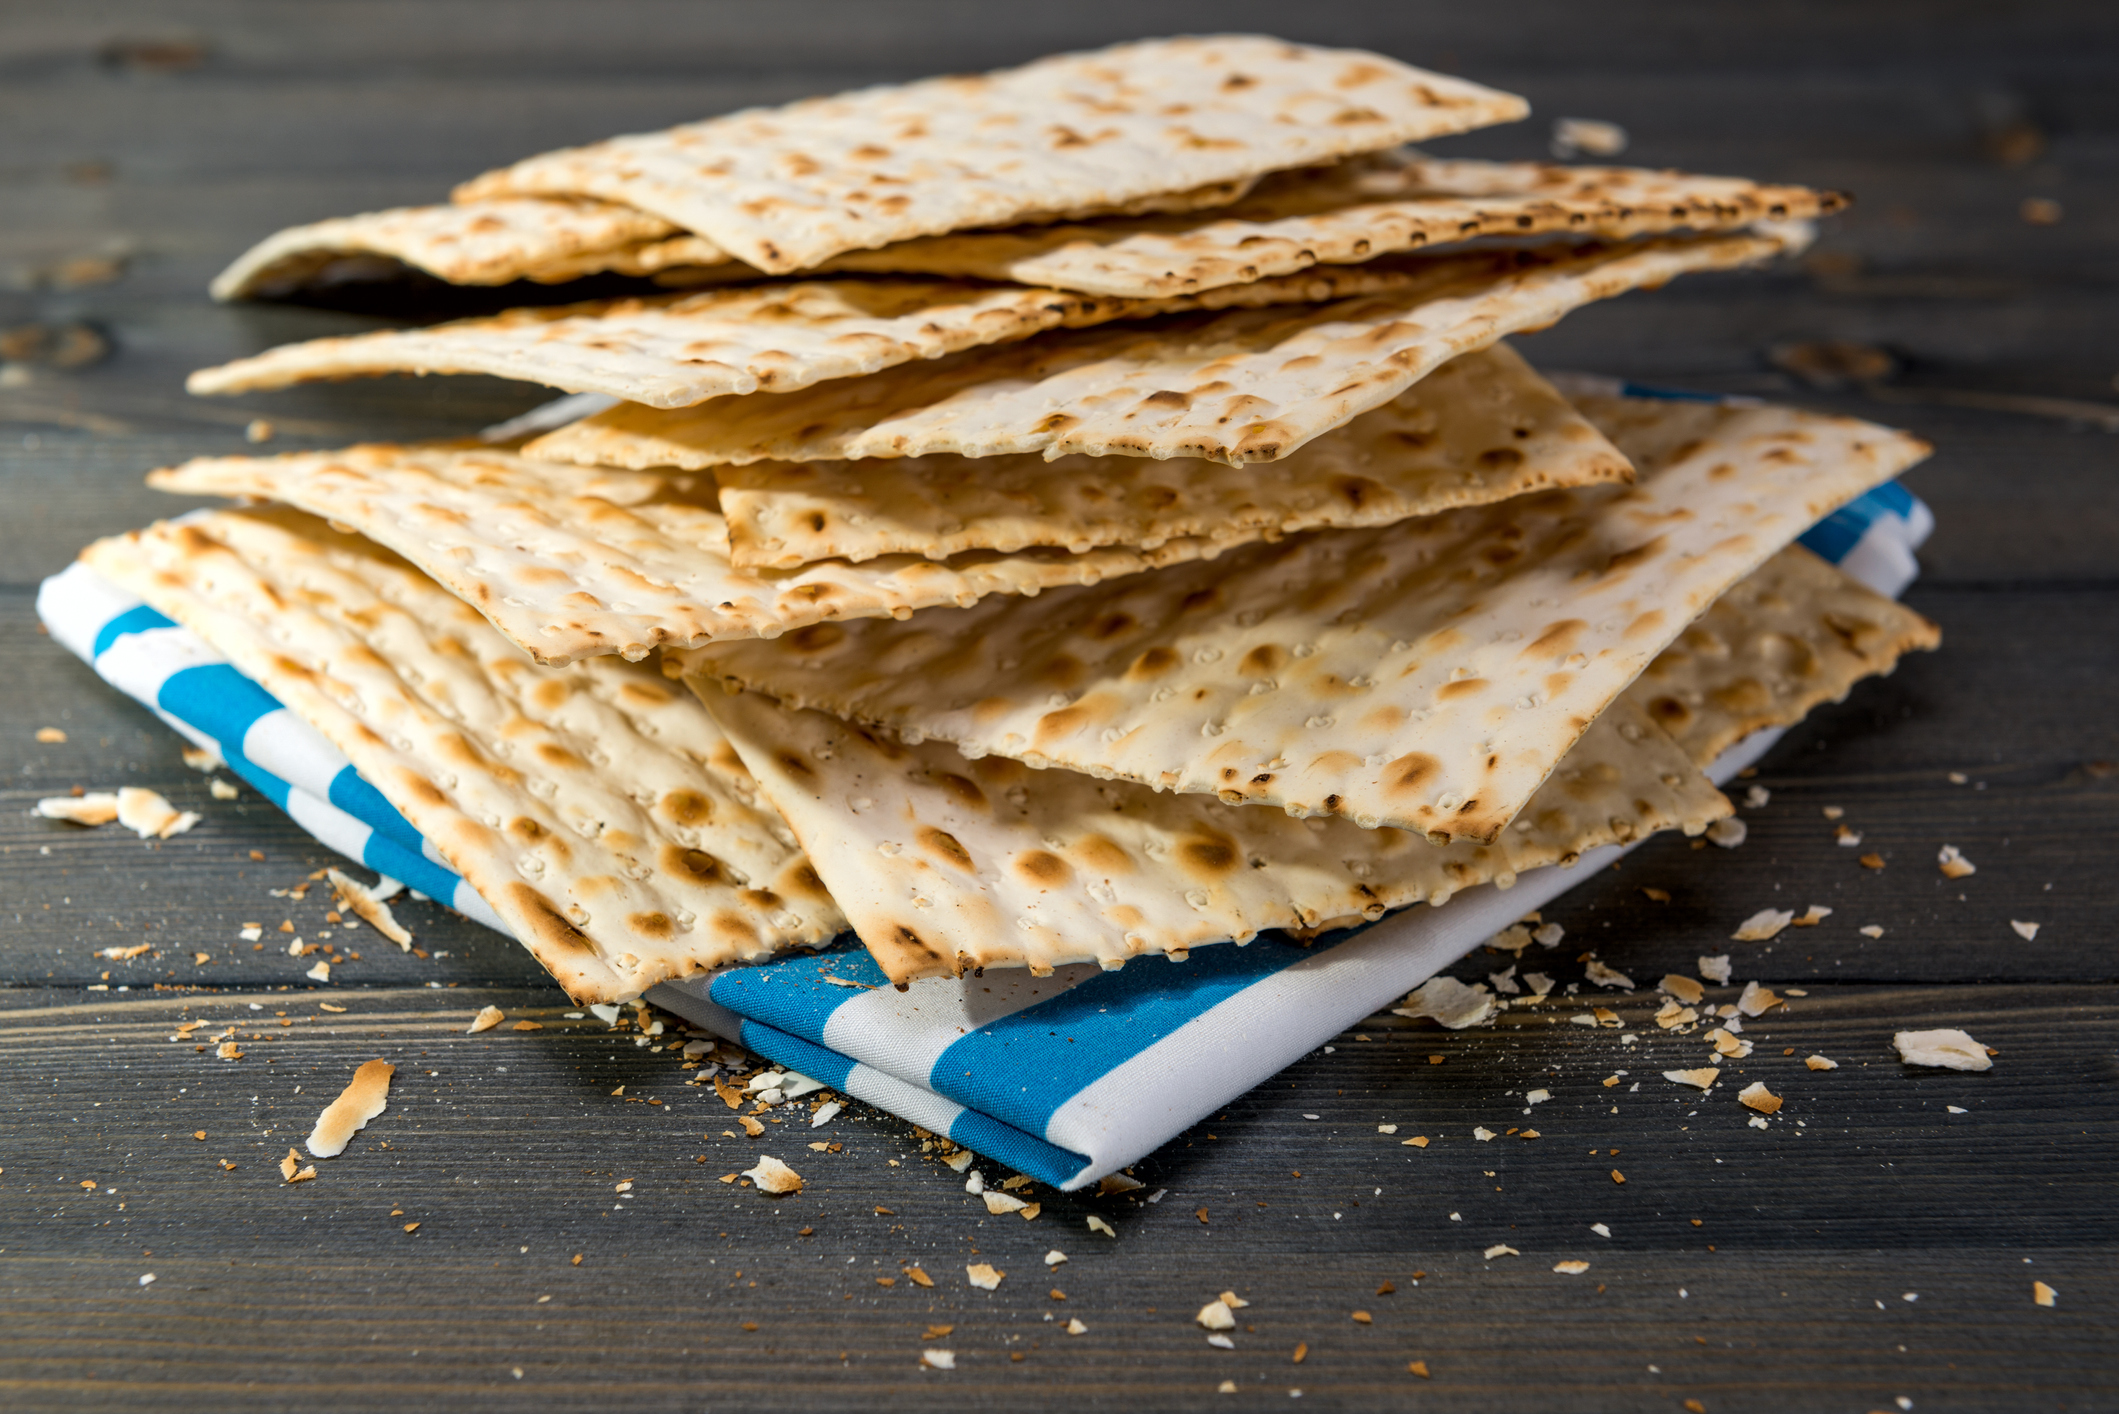 Pesach Sheni In The Time Of COVID: Another Chance To Honor Tradition